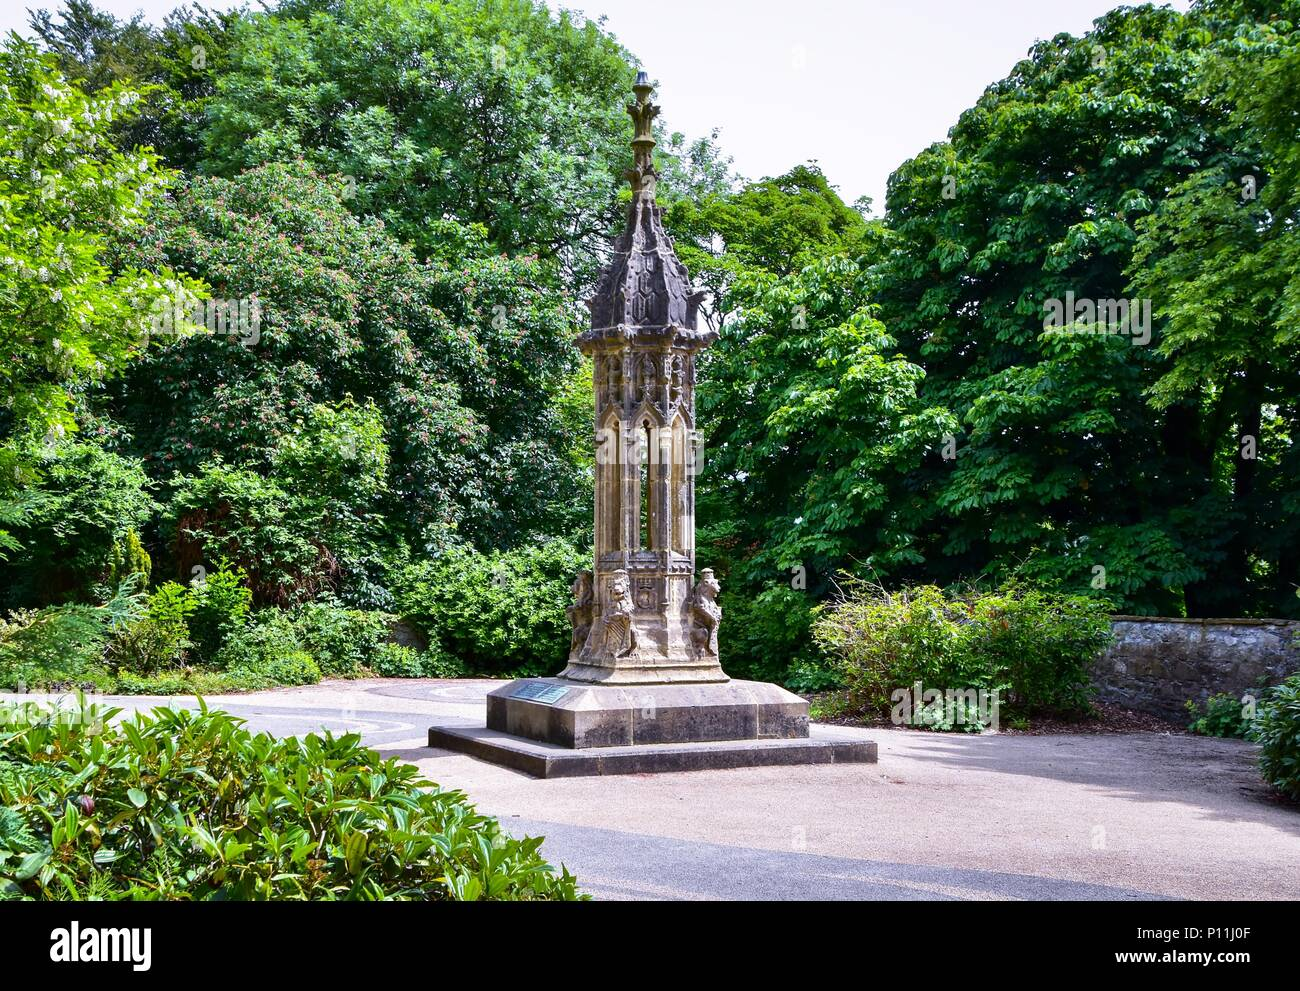 The Pinnacle at Clitheroe Castle - Stock Image